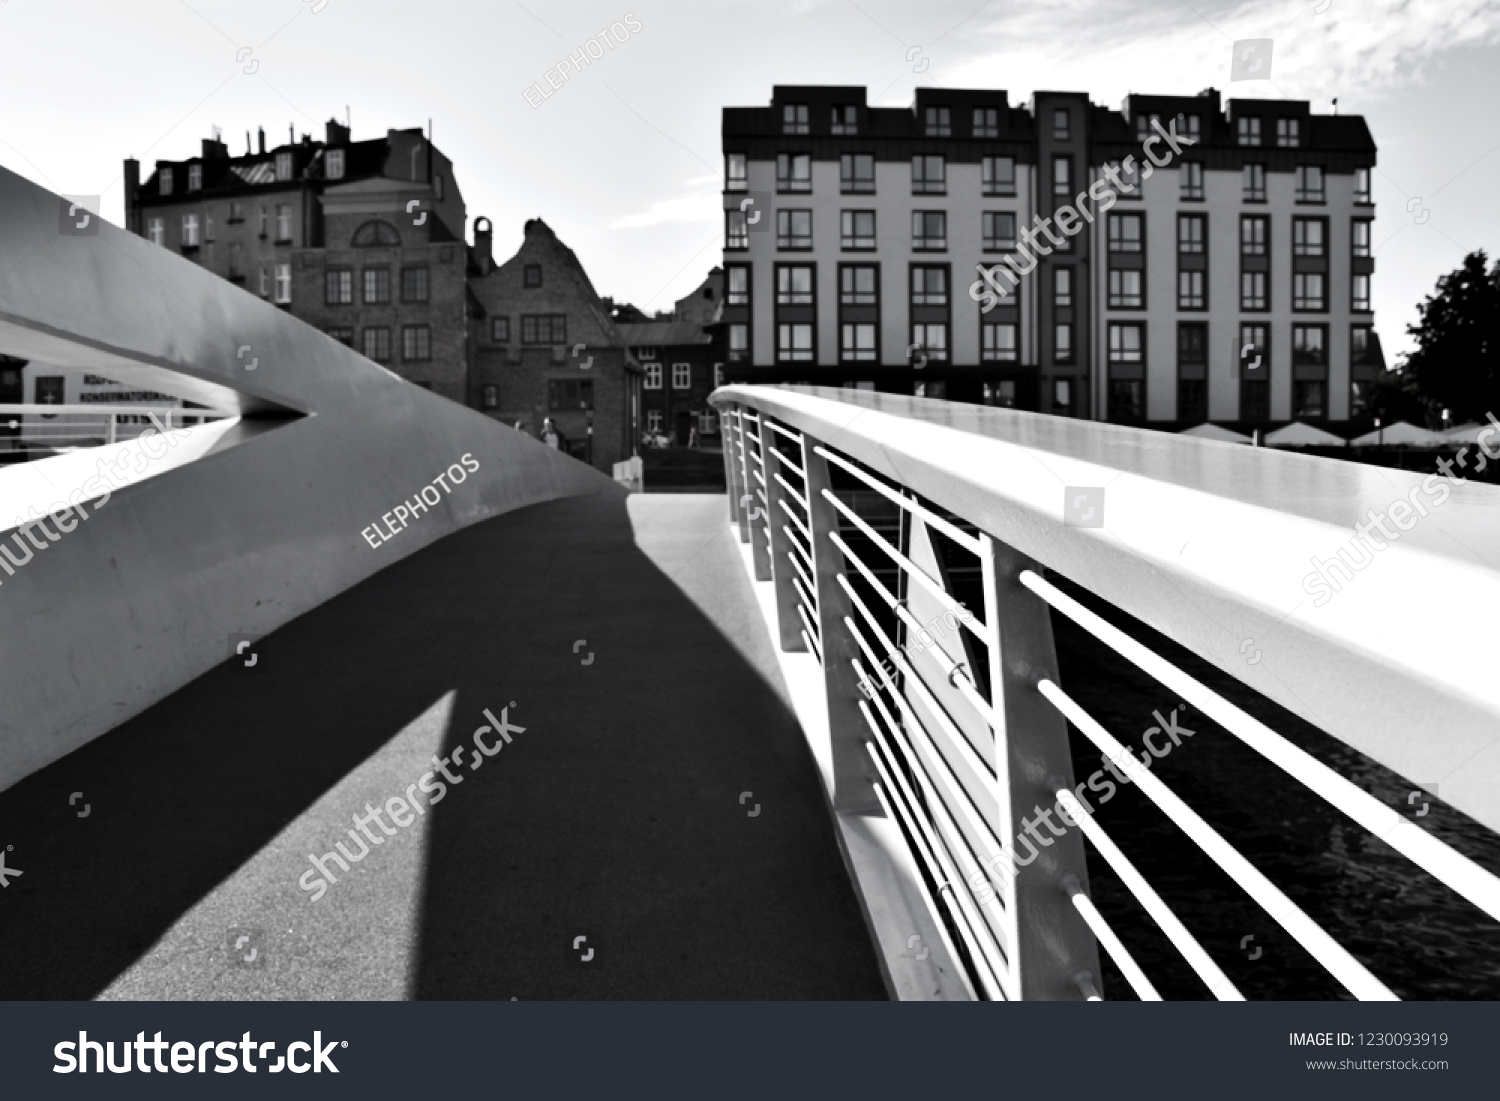 Ołowianka island footbridge in the historical center of gdansk poland black and white blur